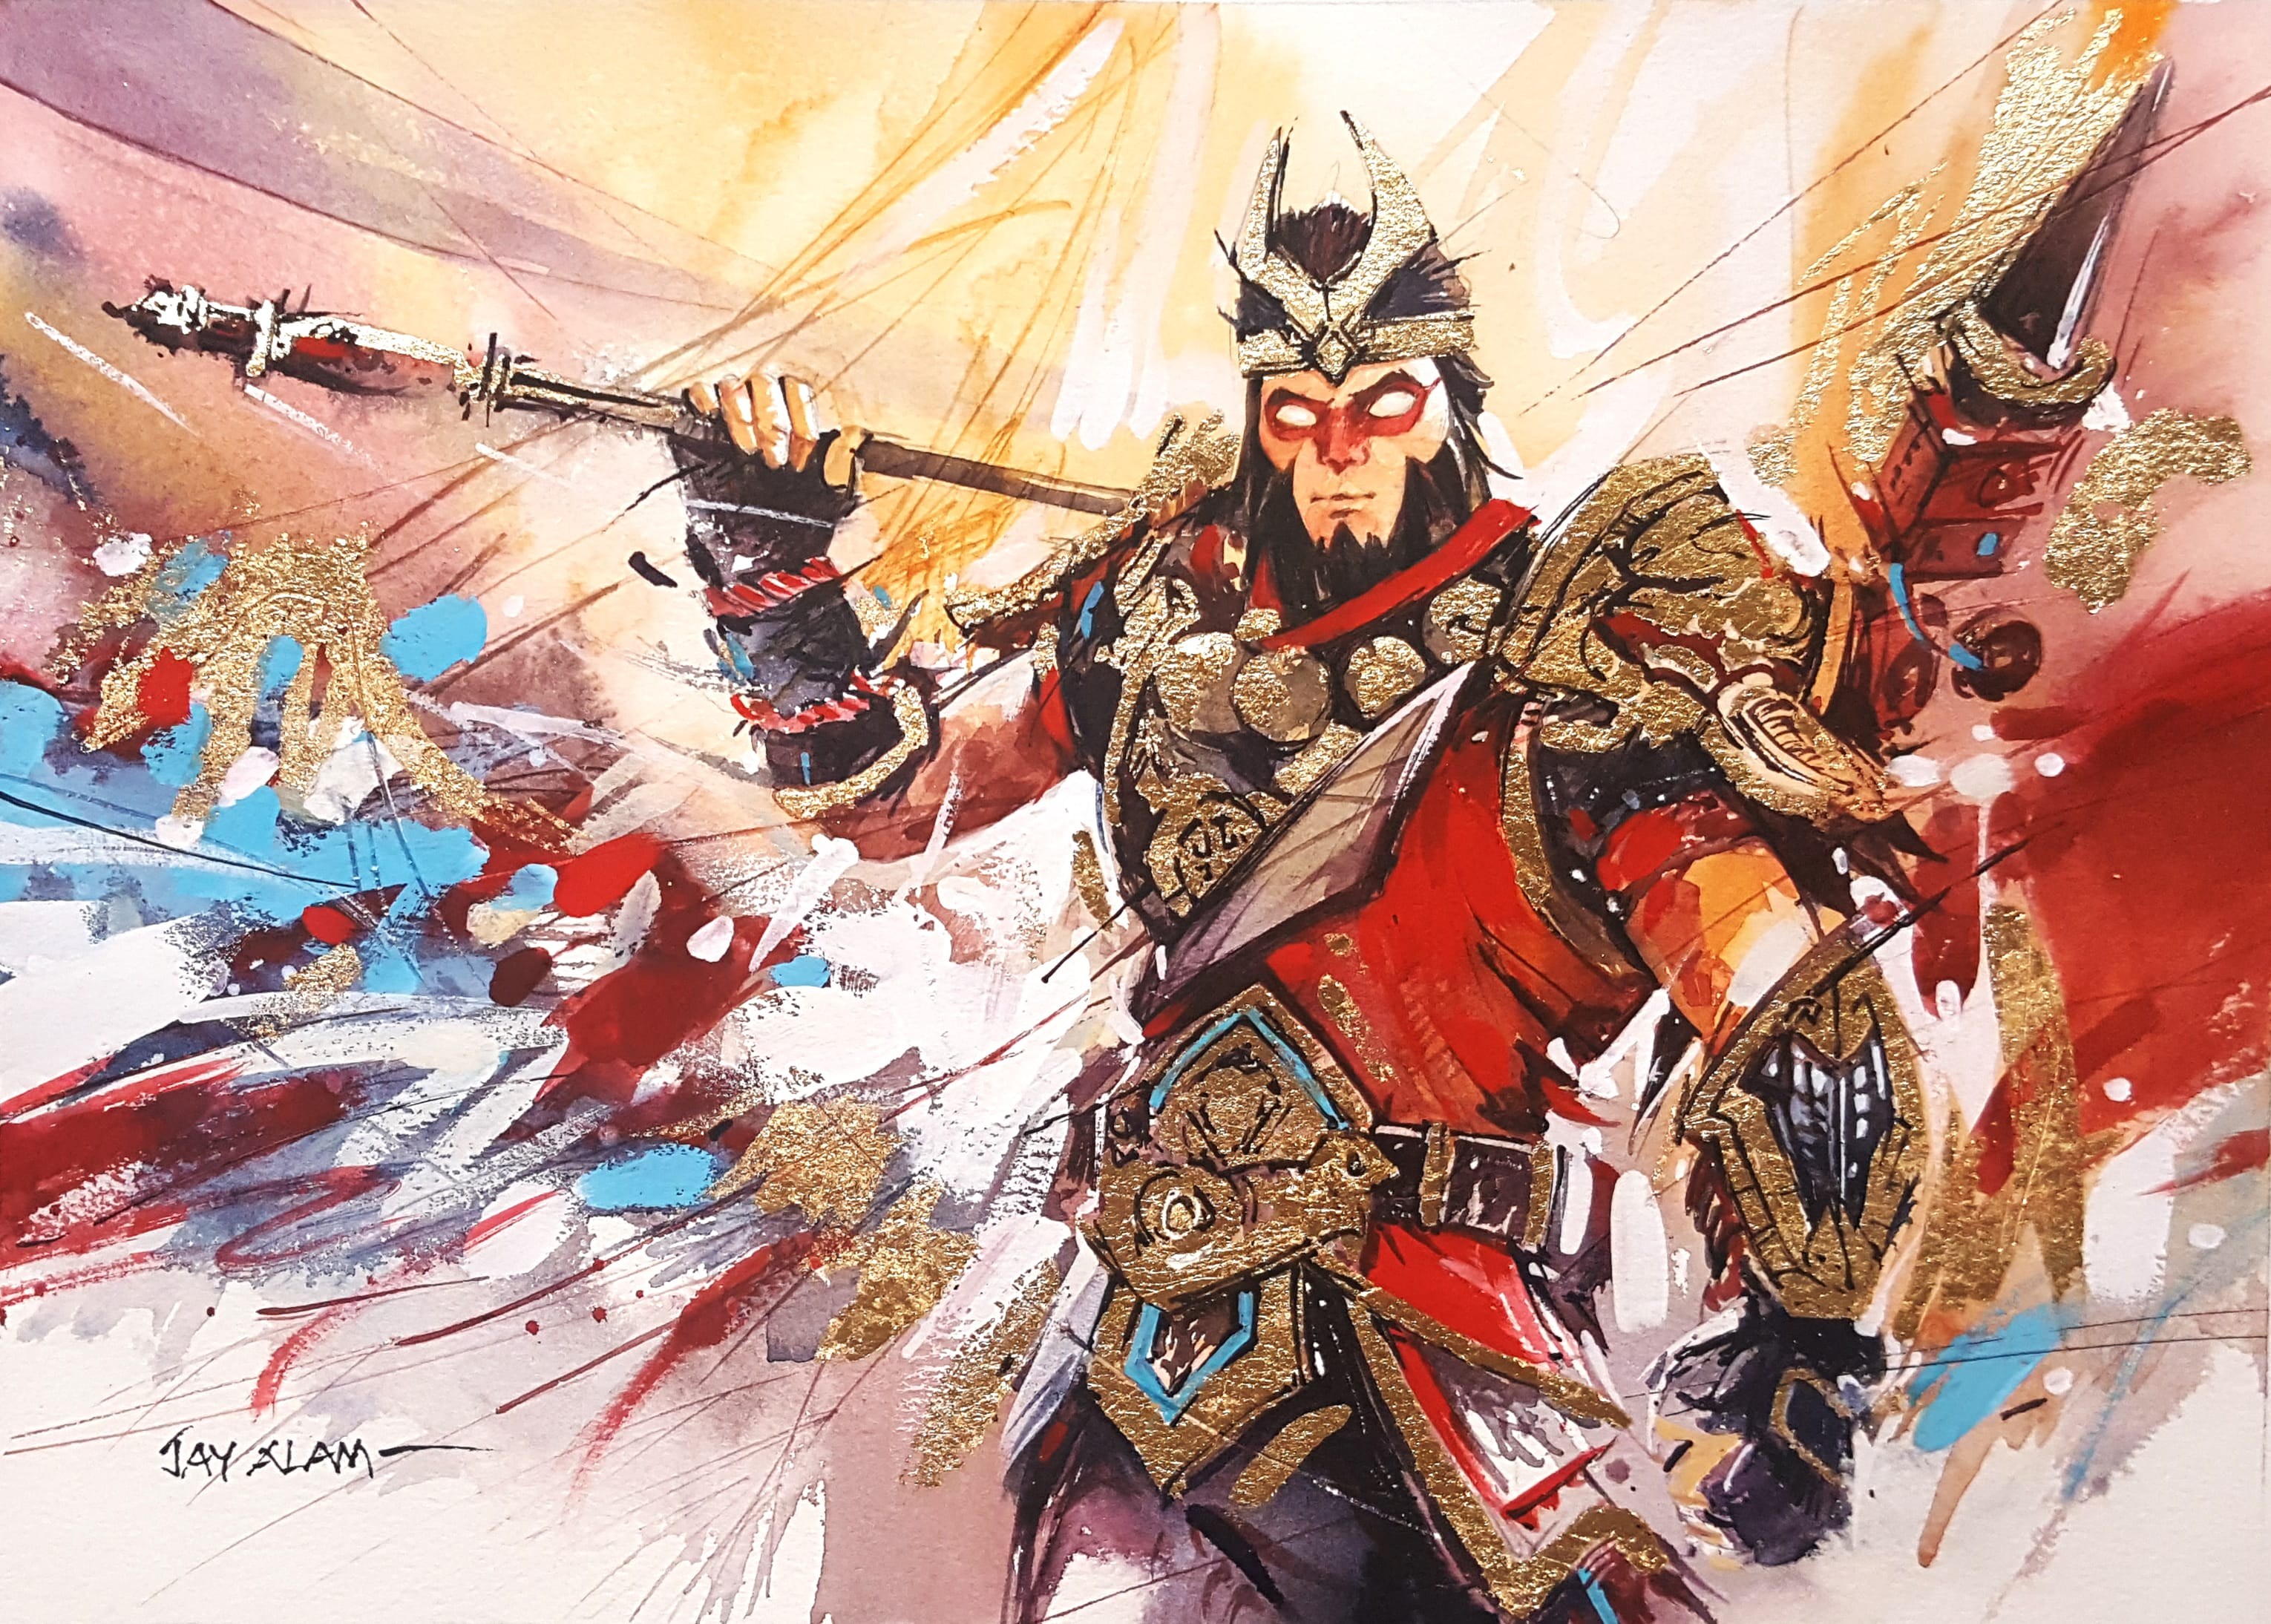 Fortnite Wukong Watercolour Painting Wallpapers and Free Stock